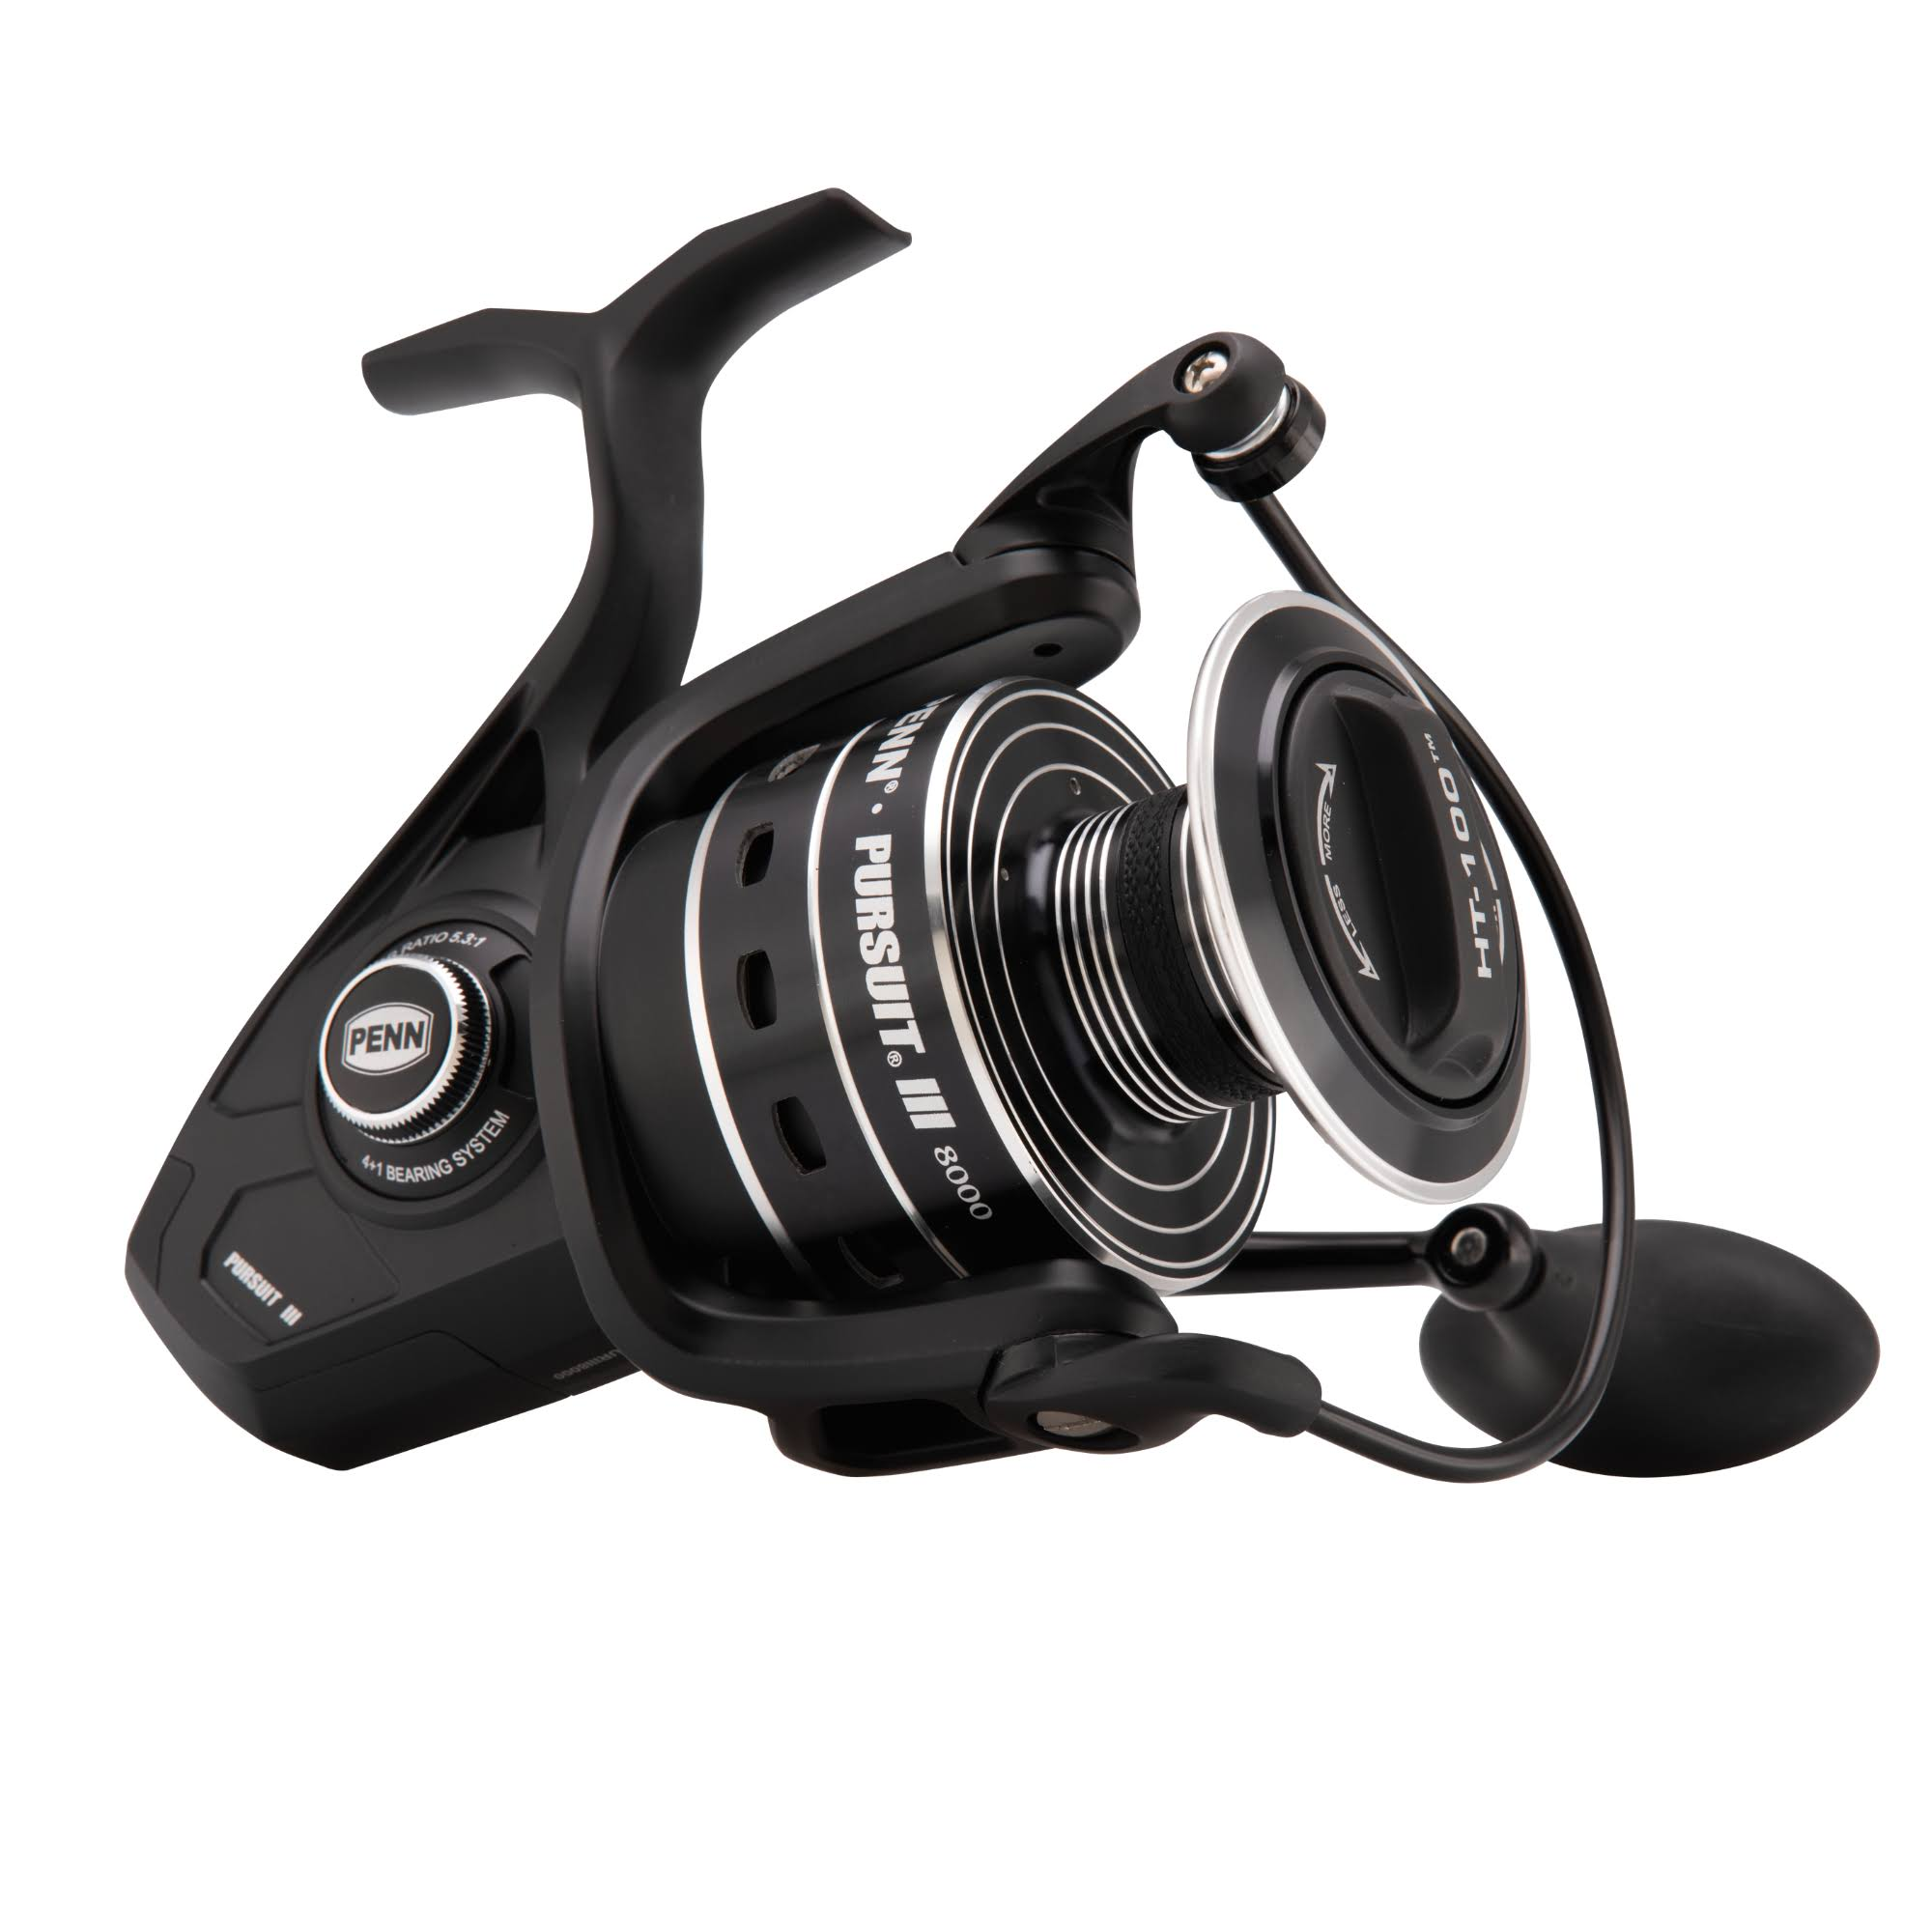 Penn PURIII8000 Pursuit III Spinning Reel